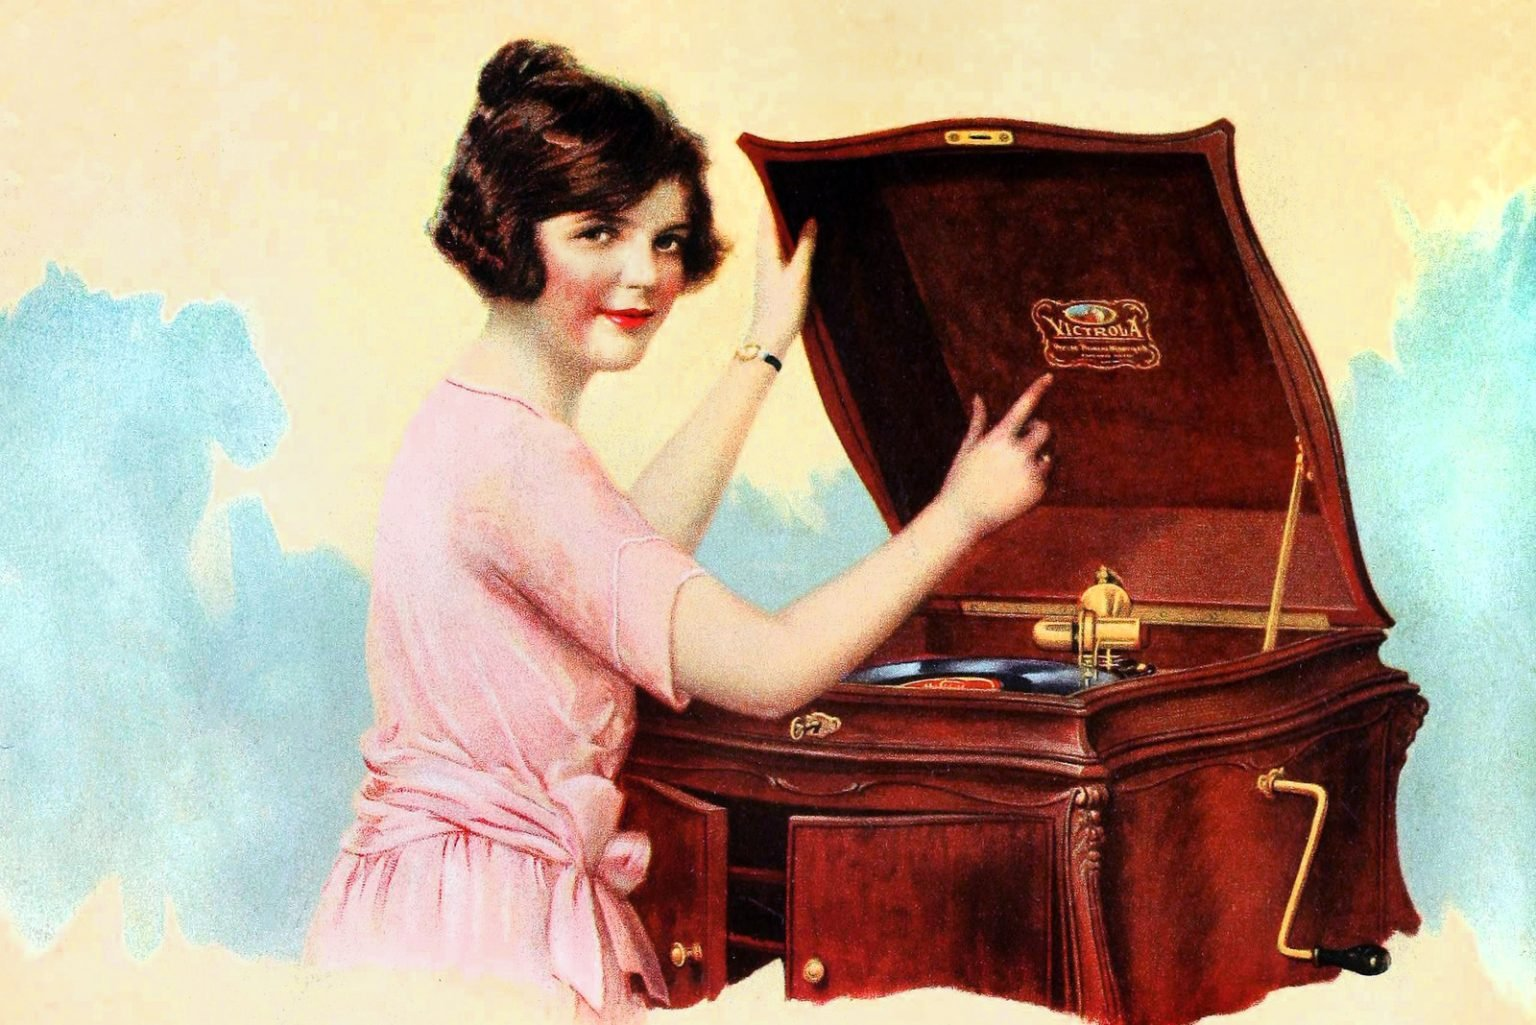 Antique Victrola record machine of wood from the 1920s